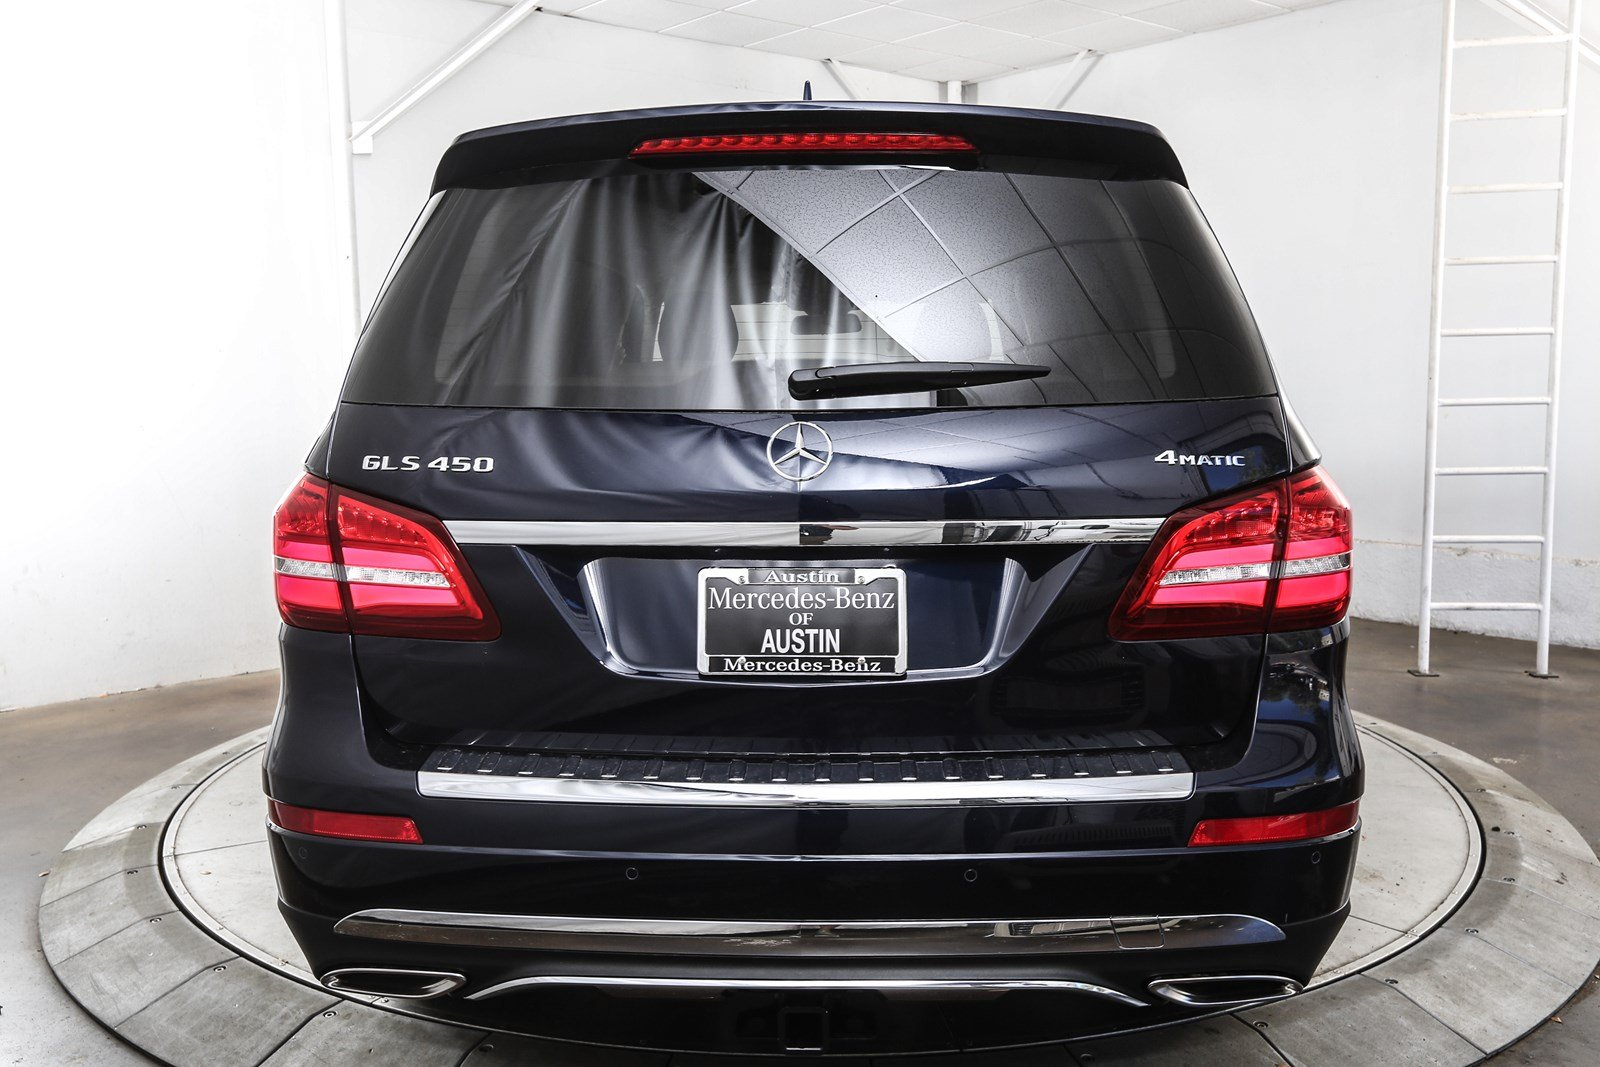 New 2017 mercedes benz gls gls 450 suv in austin m56834 for 2017 mercedes benz gls 450